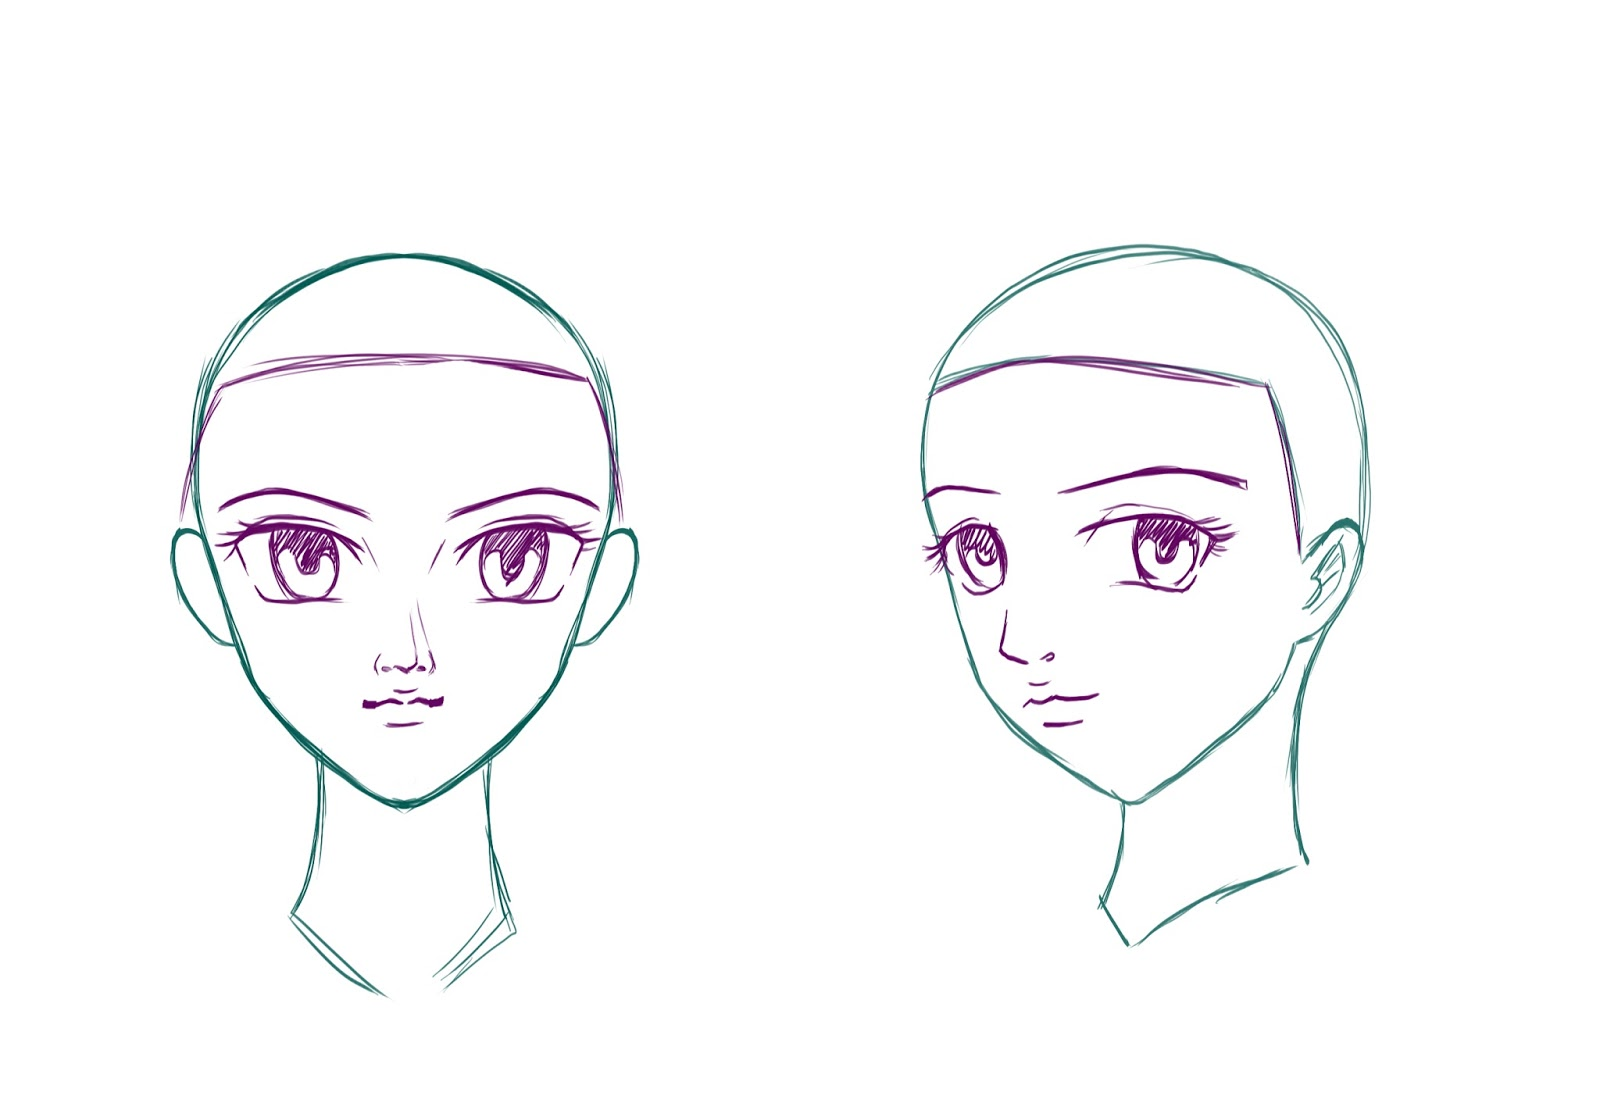 How To Draw A Hair Of Animã© With Steps